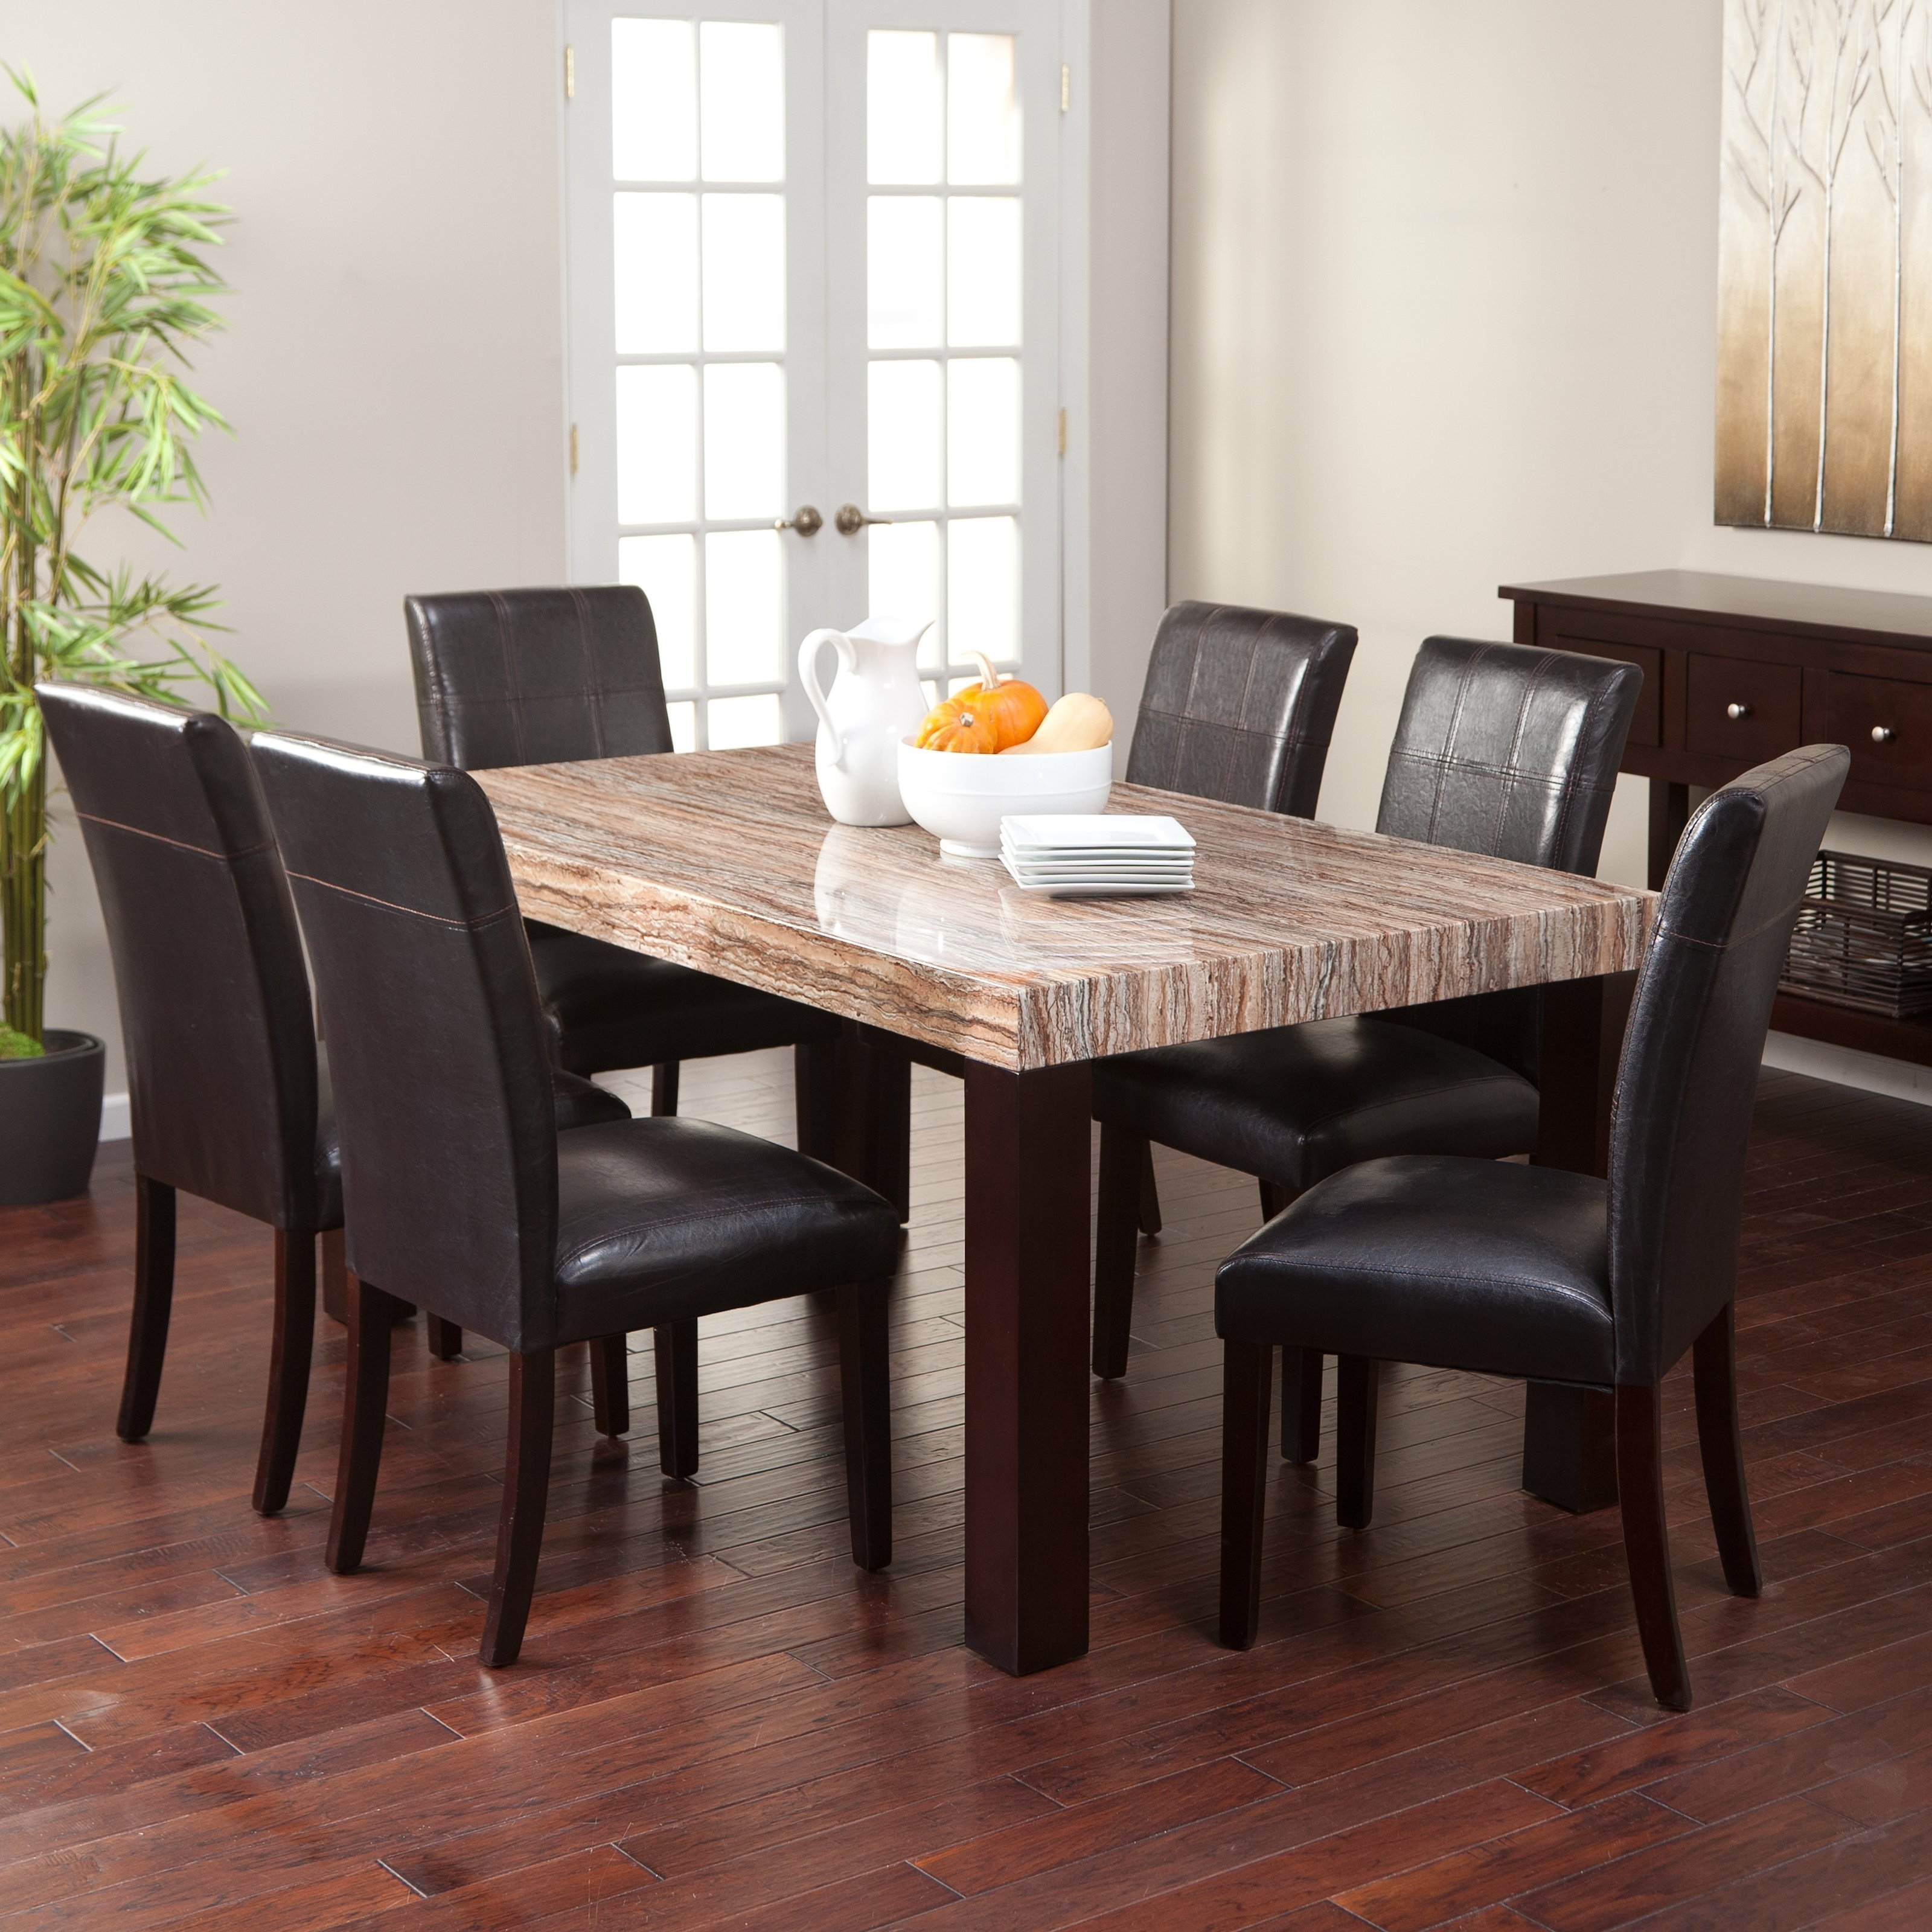 Most Recently Released Norwood 7 Piece Rectangular Extension Dining Sets With Bench, Host & Side Chairs Regarding O – Itfoxy (View 20 of 25)